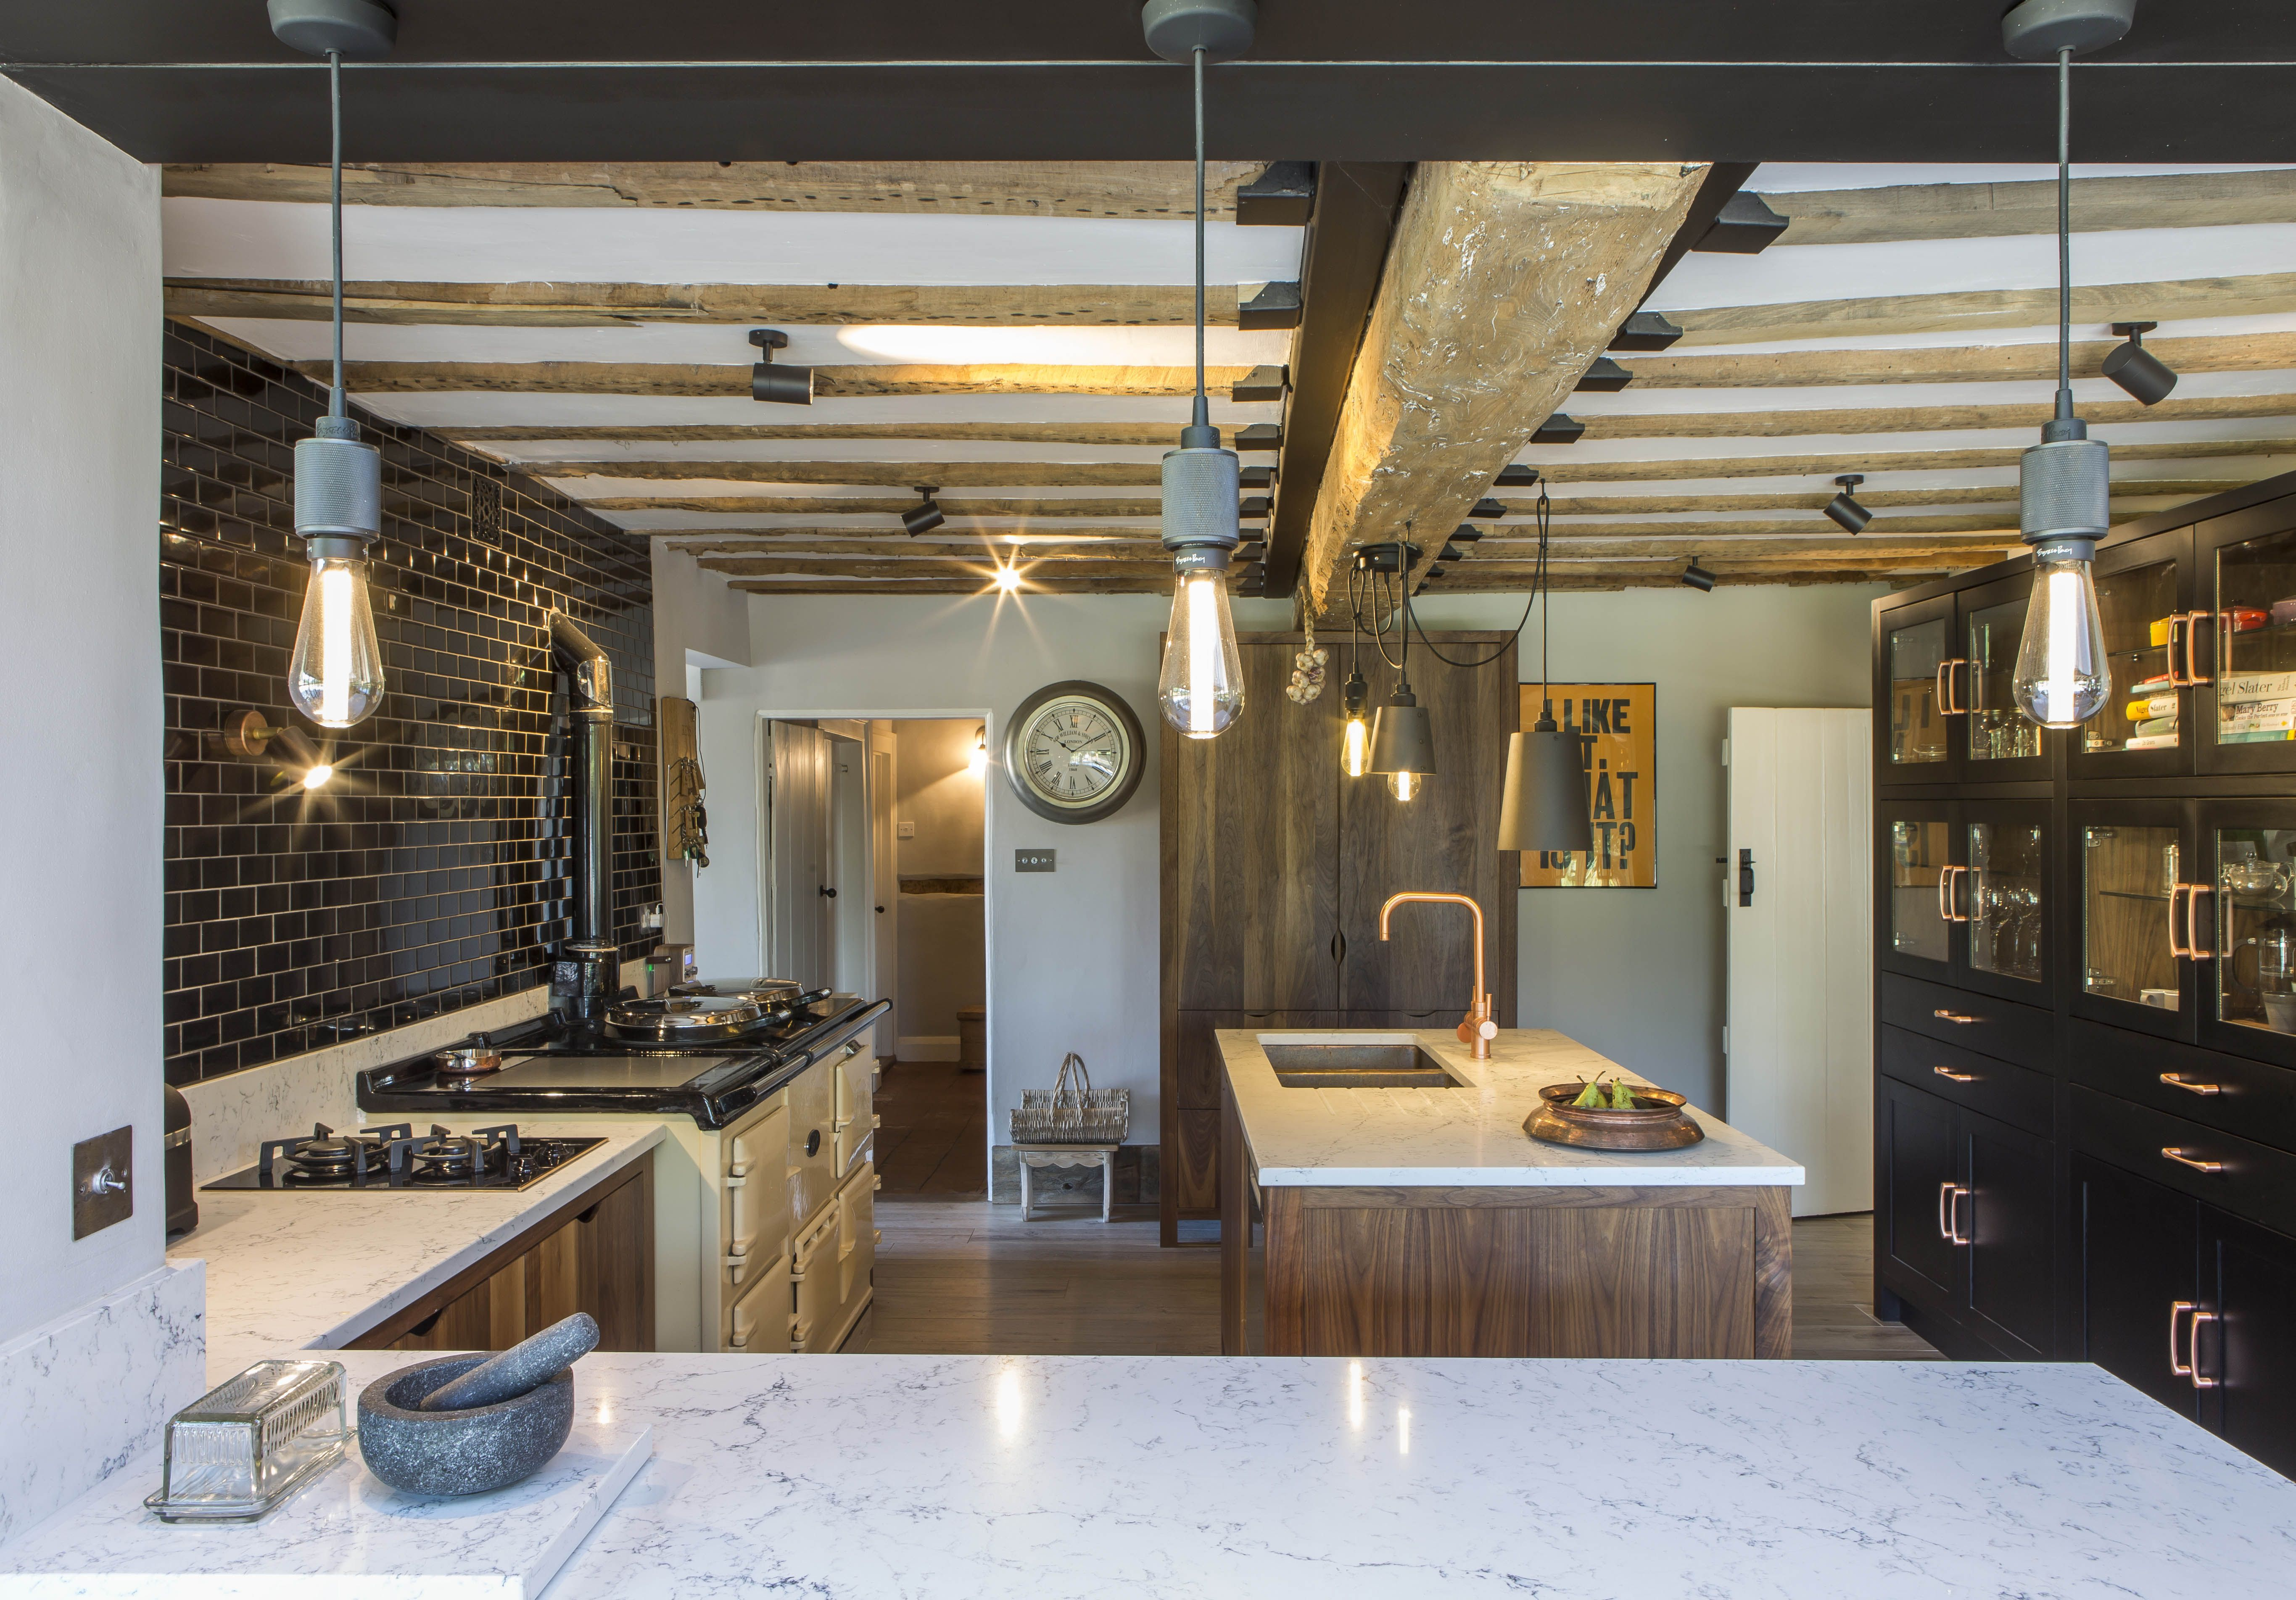 Country Living Modern Rustic Style Kitchen And Open Plan Dining Room Buster And Punch Lighting And Bespoke Wa Kitchen Styling Walnut Kitchen Kitchen Extension